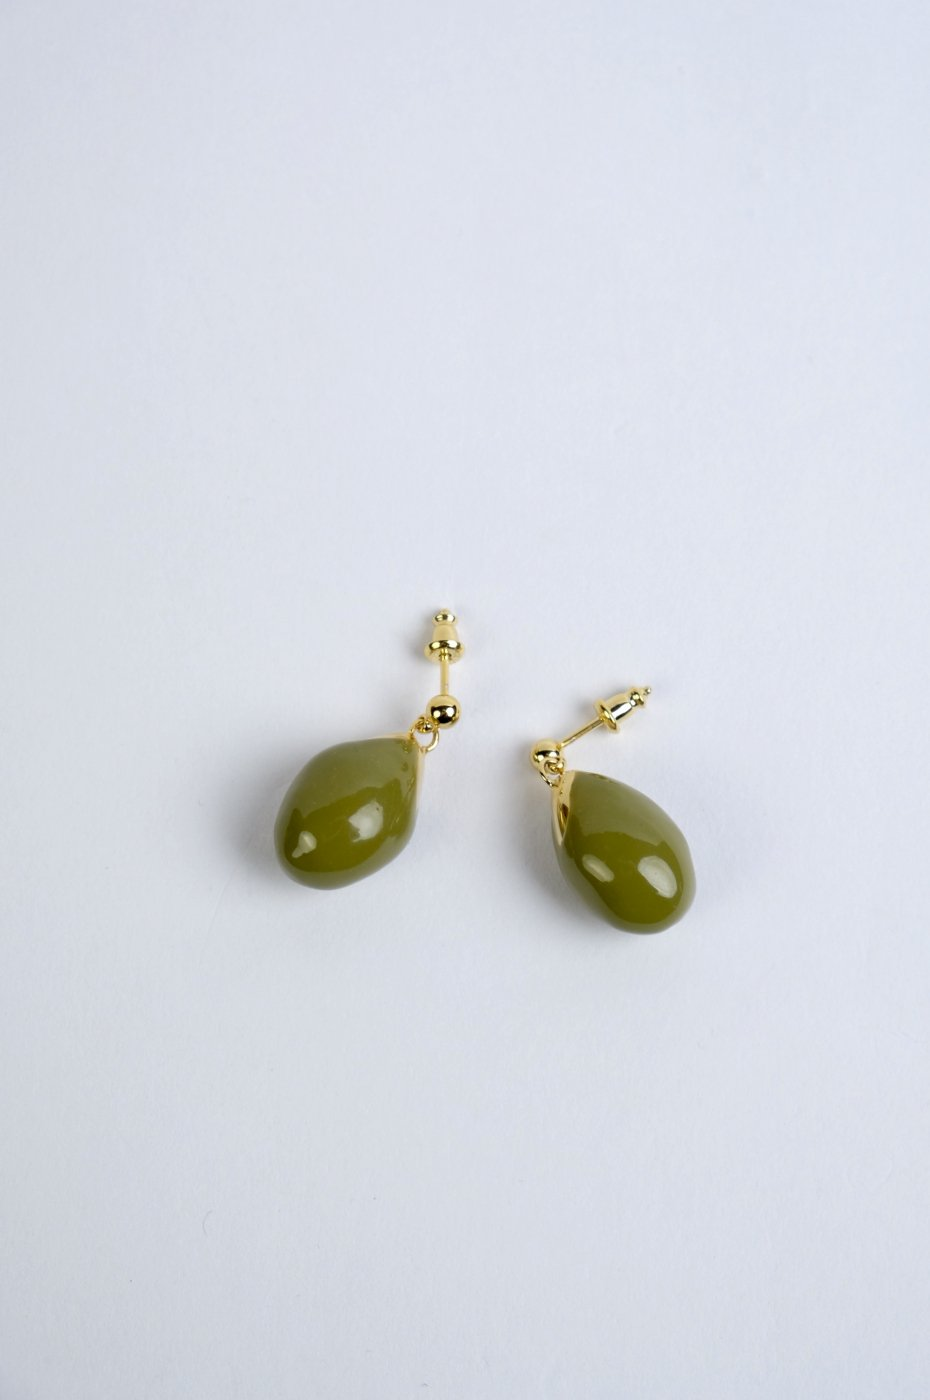 R.ALAGANララガン-OLIVE EARRINGS-OLIVE/GOLD